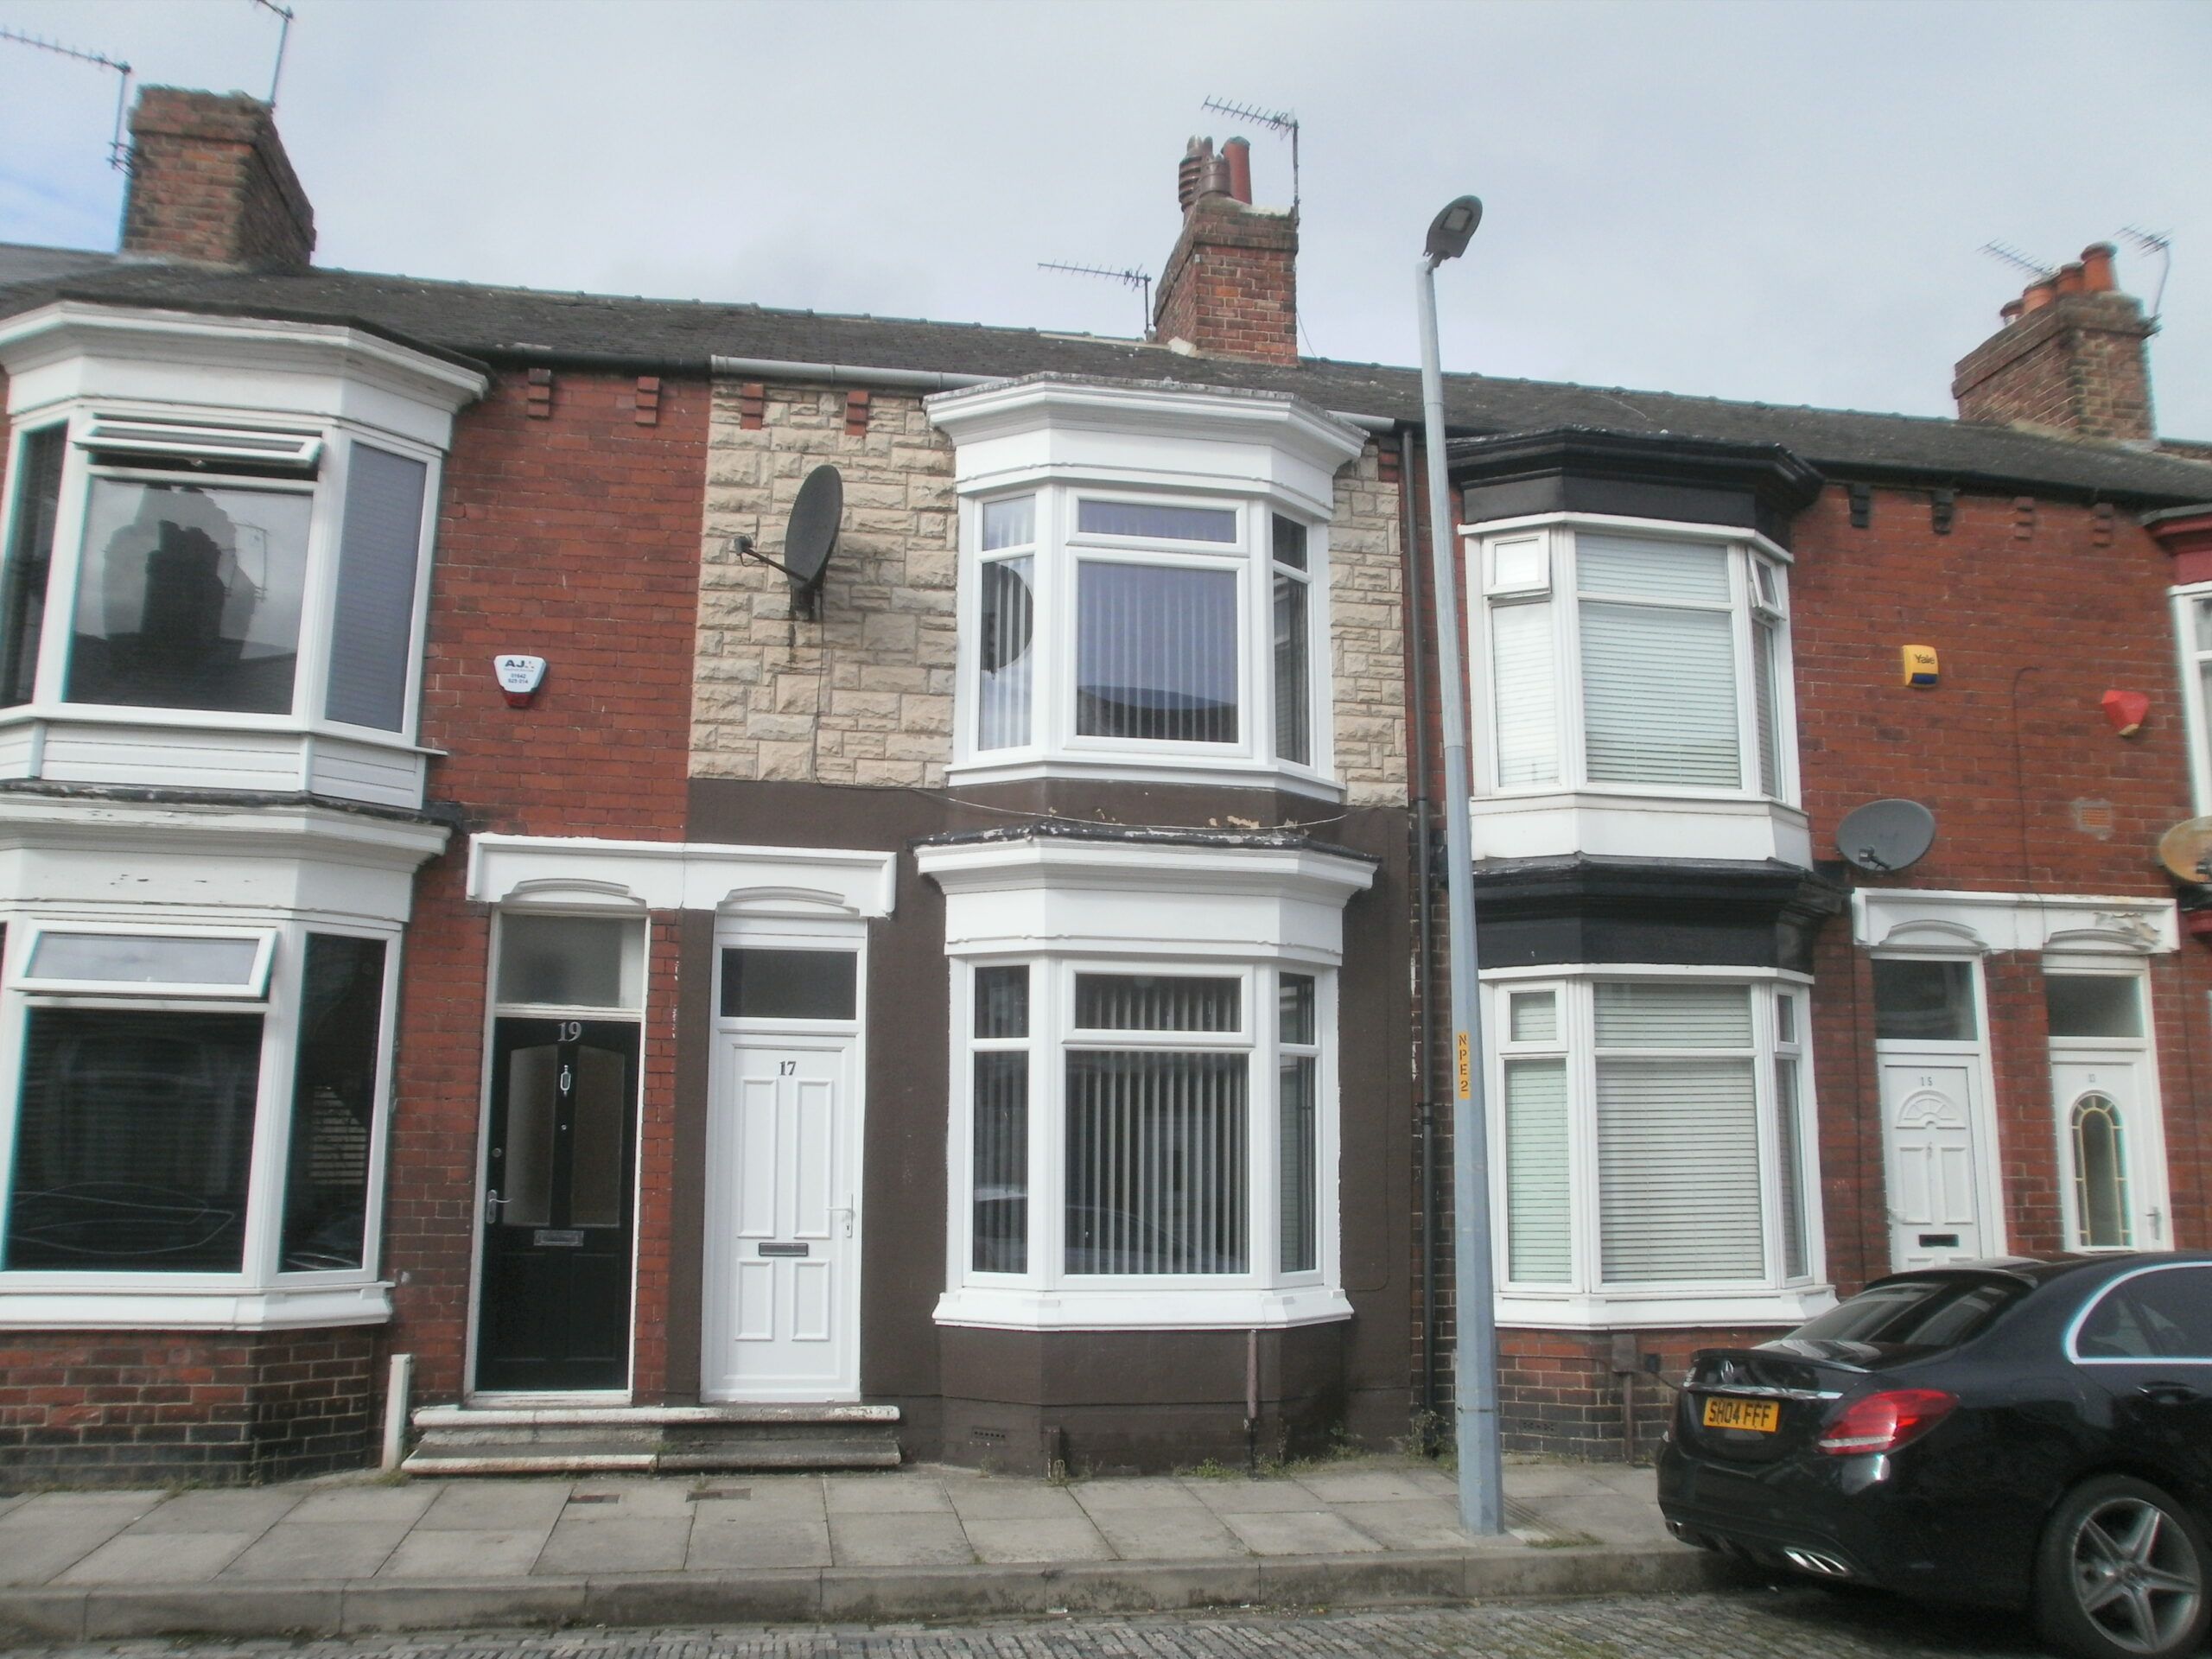 Brompton Street, Linthorpe, Middlesbrough